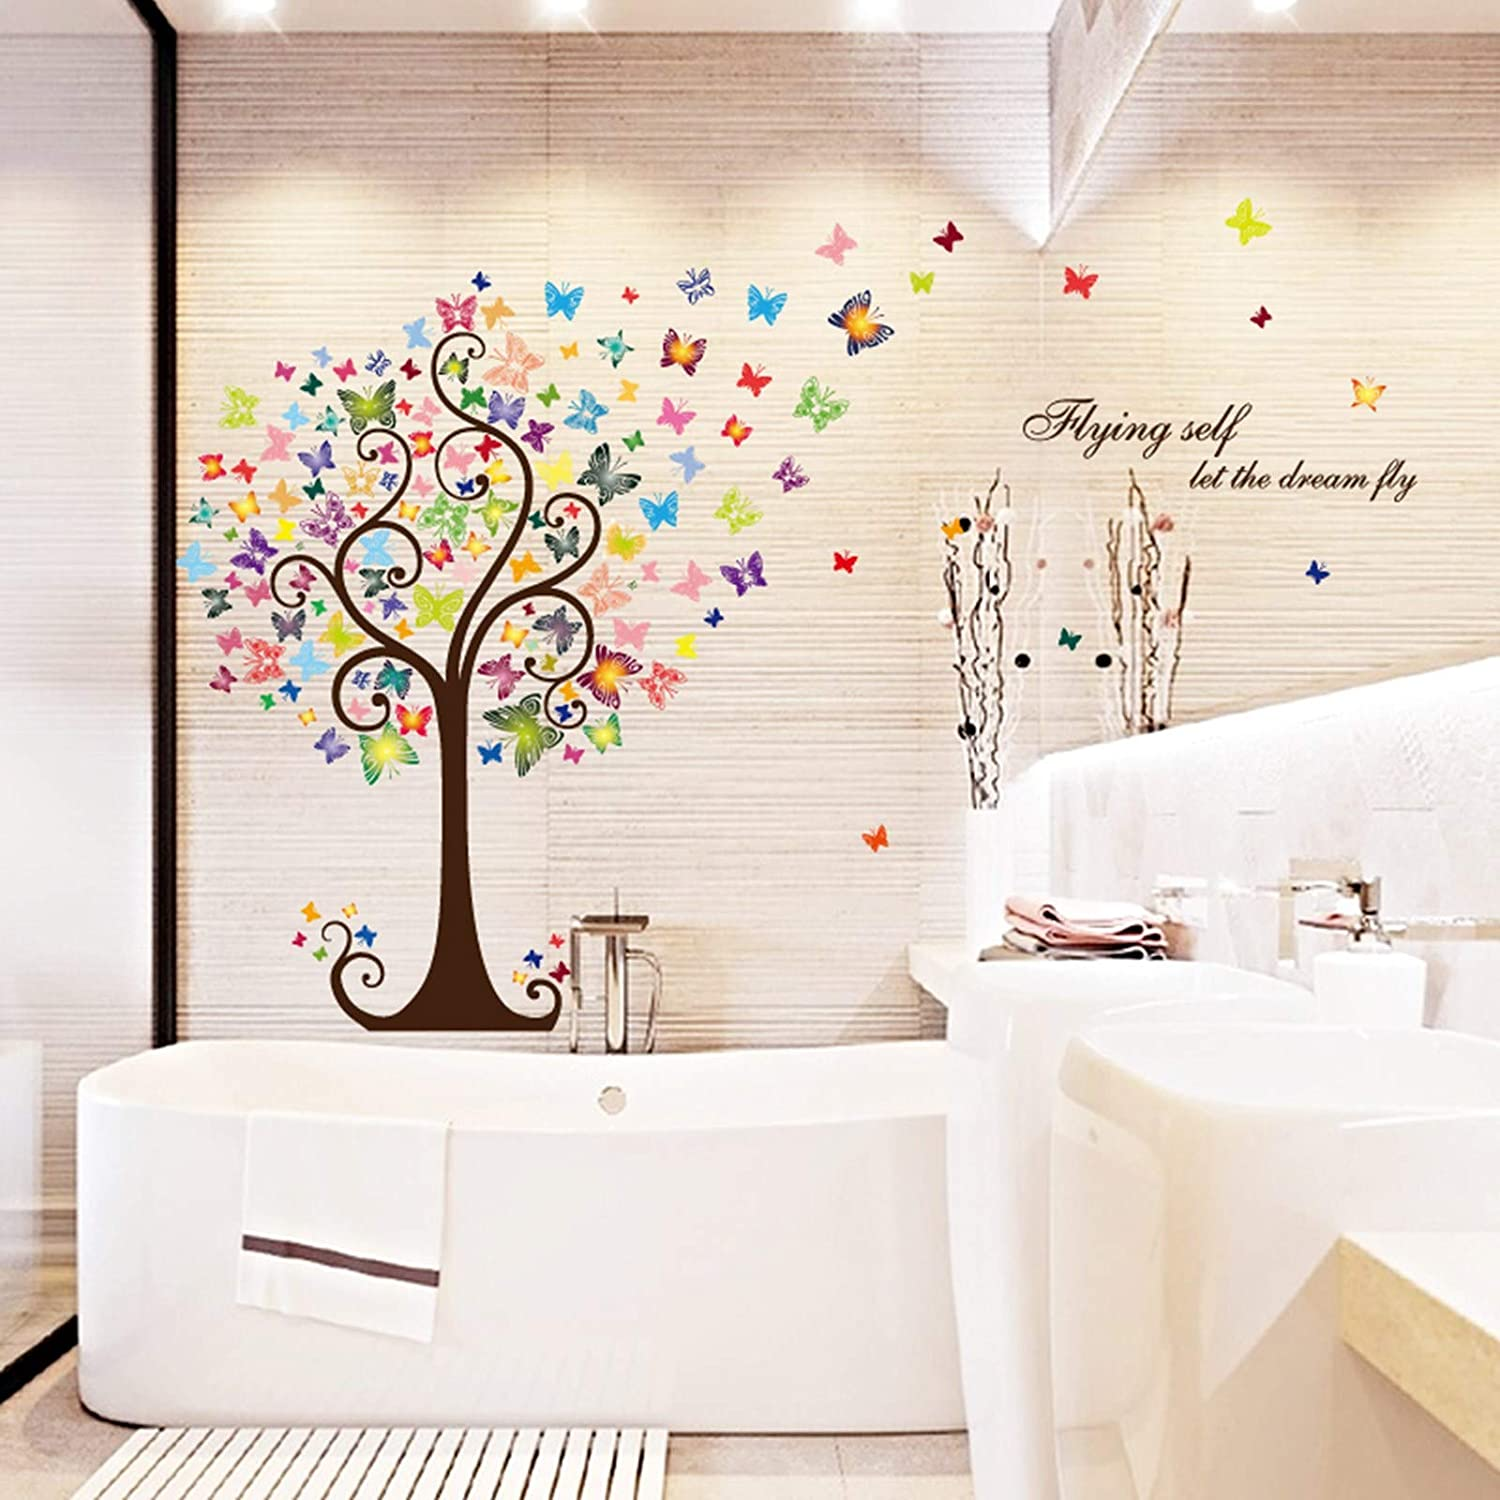 Cartoon Heart Tree Butterfly Wall Decals Removable Wall Decor Decorative Painting Supplies Wall Treatments Stickers for Girls Kids Living Room Bedroom